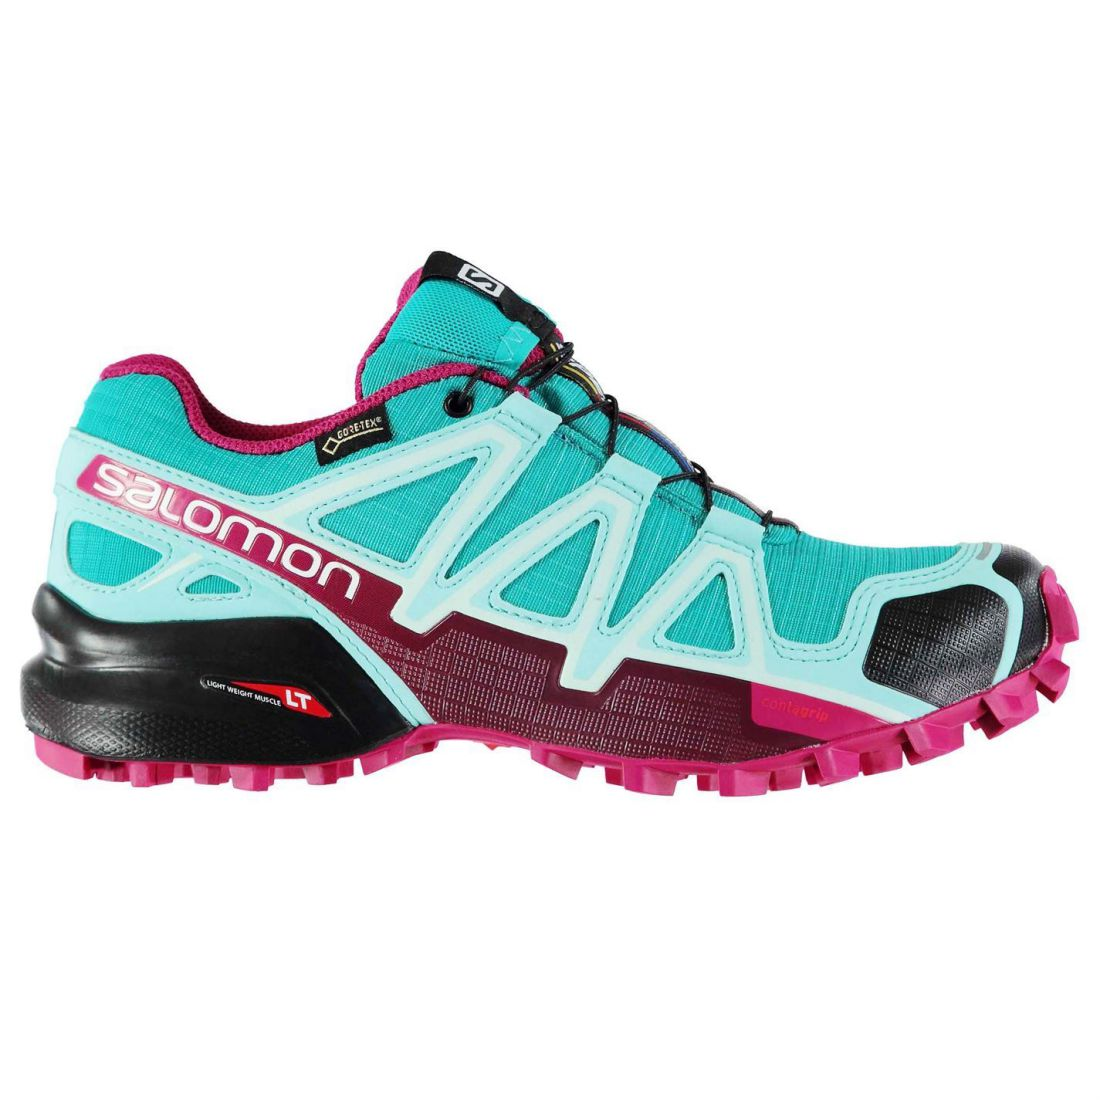 60ef9ef8086a83 Image is loading Salomon-SpeedCross-4-GTX-Trail-Running-Shoes-Womens